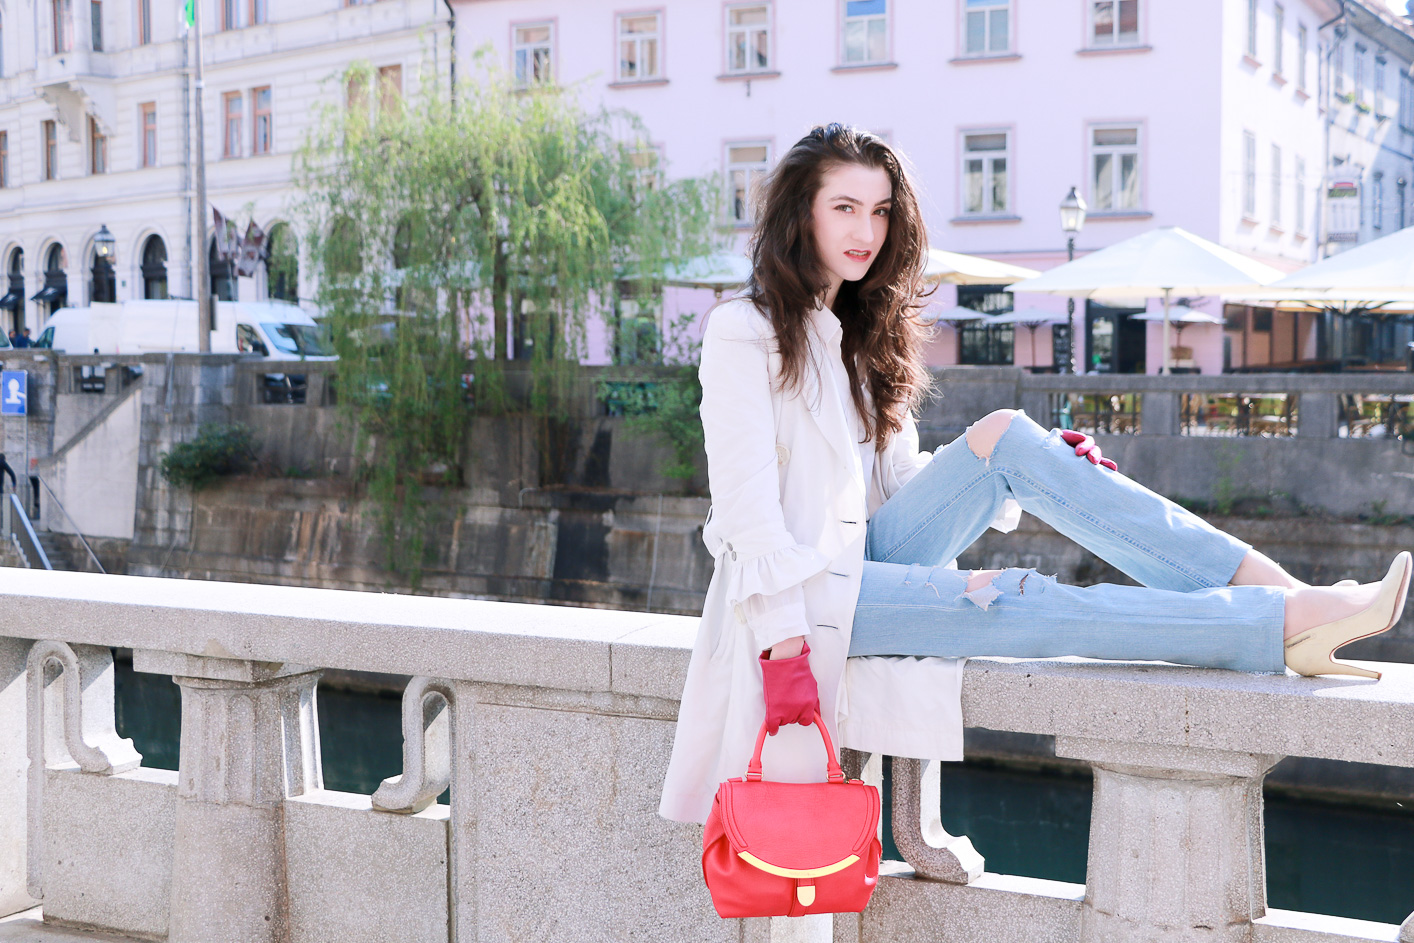 Fashion blogger Veronika Lipar of Brunette From Wall Street sharing her chic casual street style in light blue ripped jeans and white heels